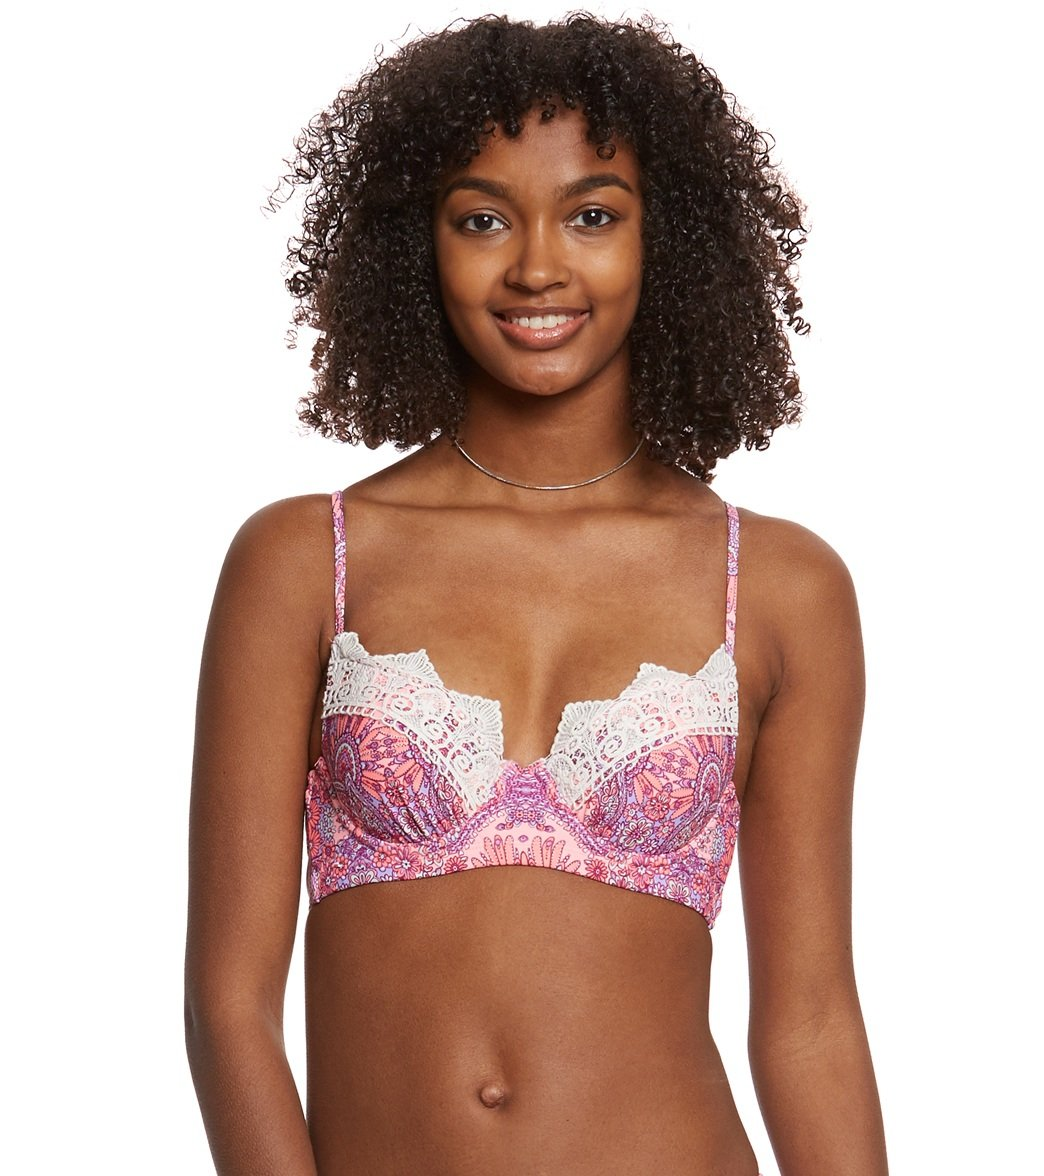 54d2dc54dcba5 Betsey Johnson Princess Charming Underwire Bump Me Up Bikini Top at  SwimOutlet.com - Free Shipping